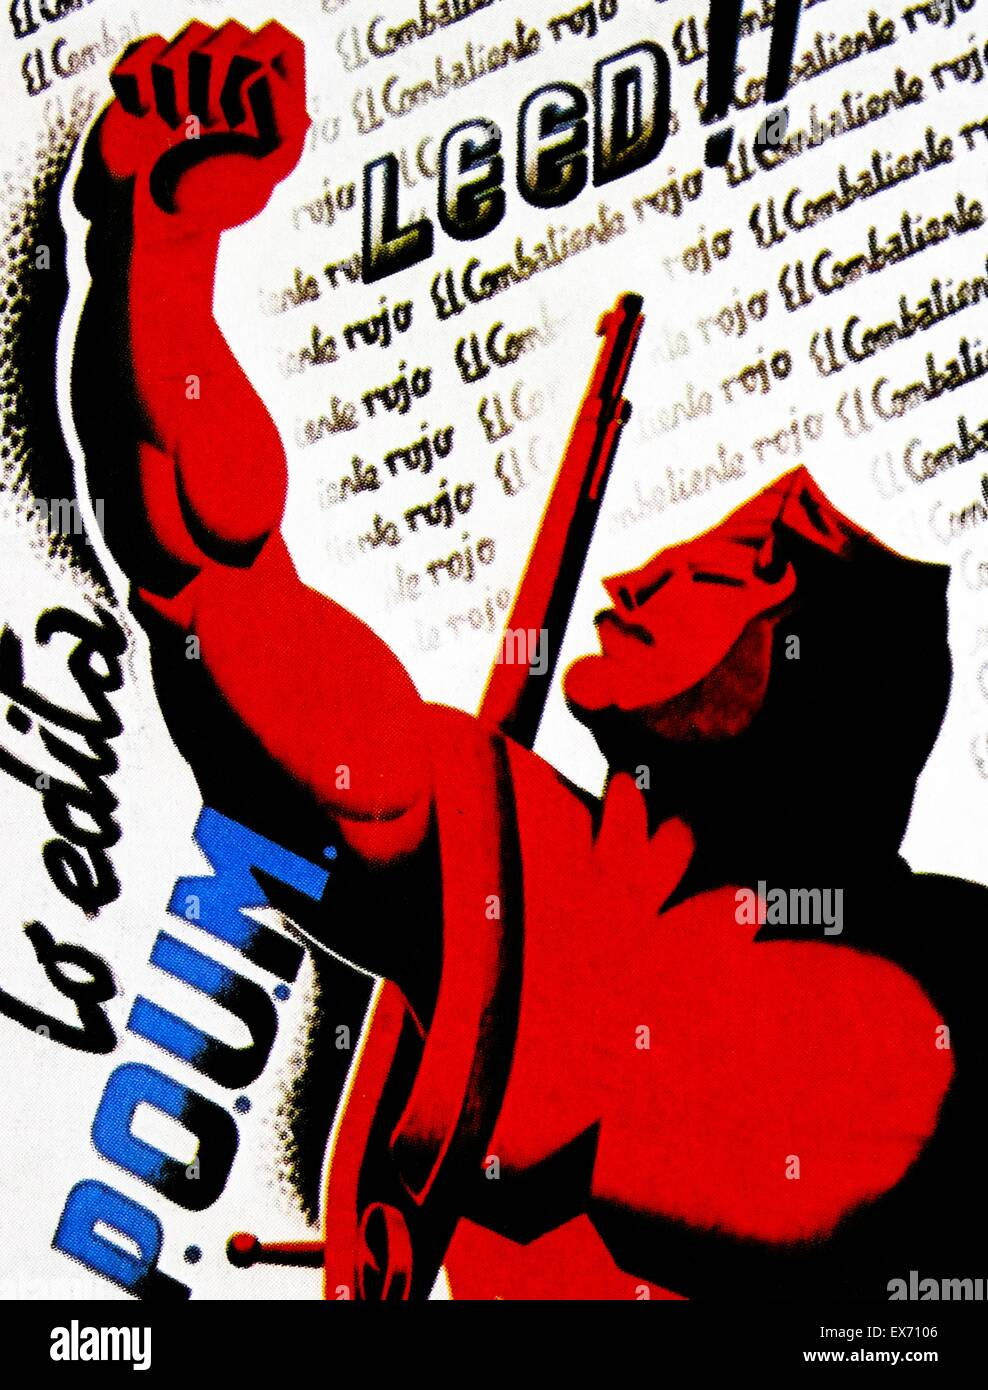 spanish communist party 1936 The spanish war and other events in 1936-37 turned the scale and thereafter i knew where i stood every line of serious work that i have written since 1936 has been written, directly or indirectly, against totalitarianism and for democratic socialism, as i understand it.